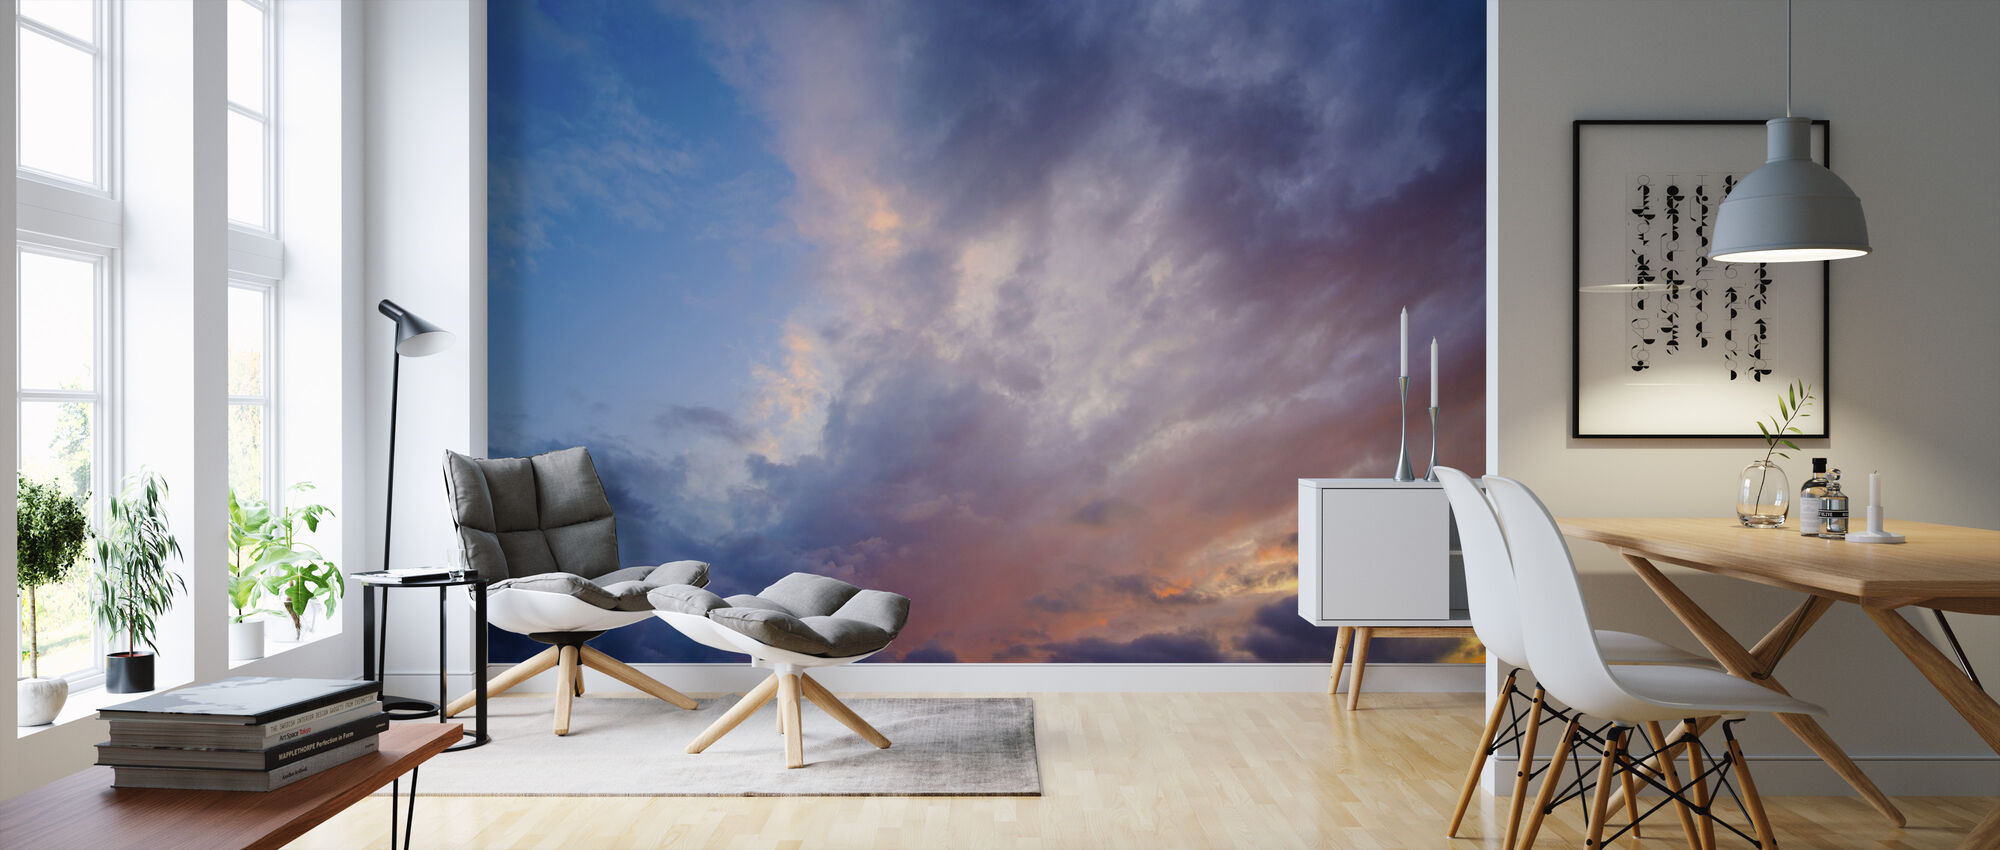 Cloudy Sky at Dusk - Wallpaper - Living Room